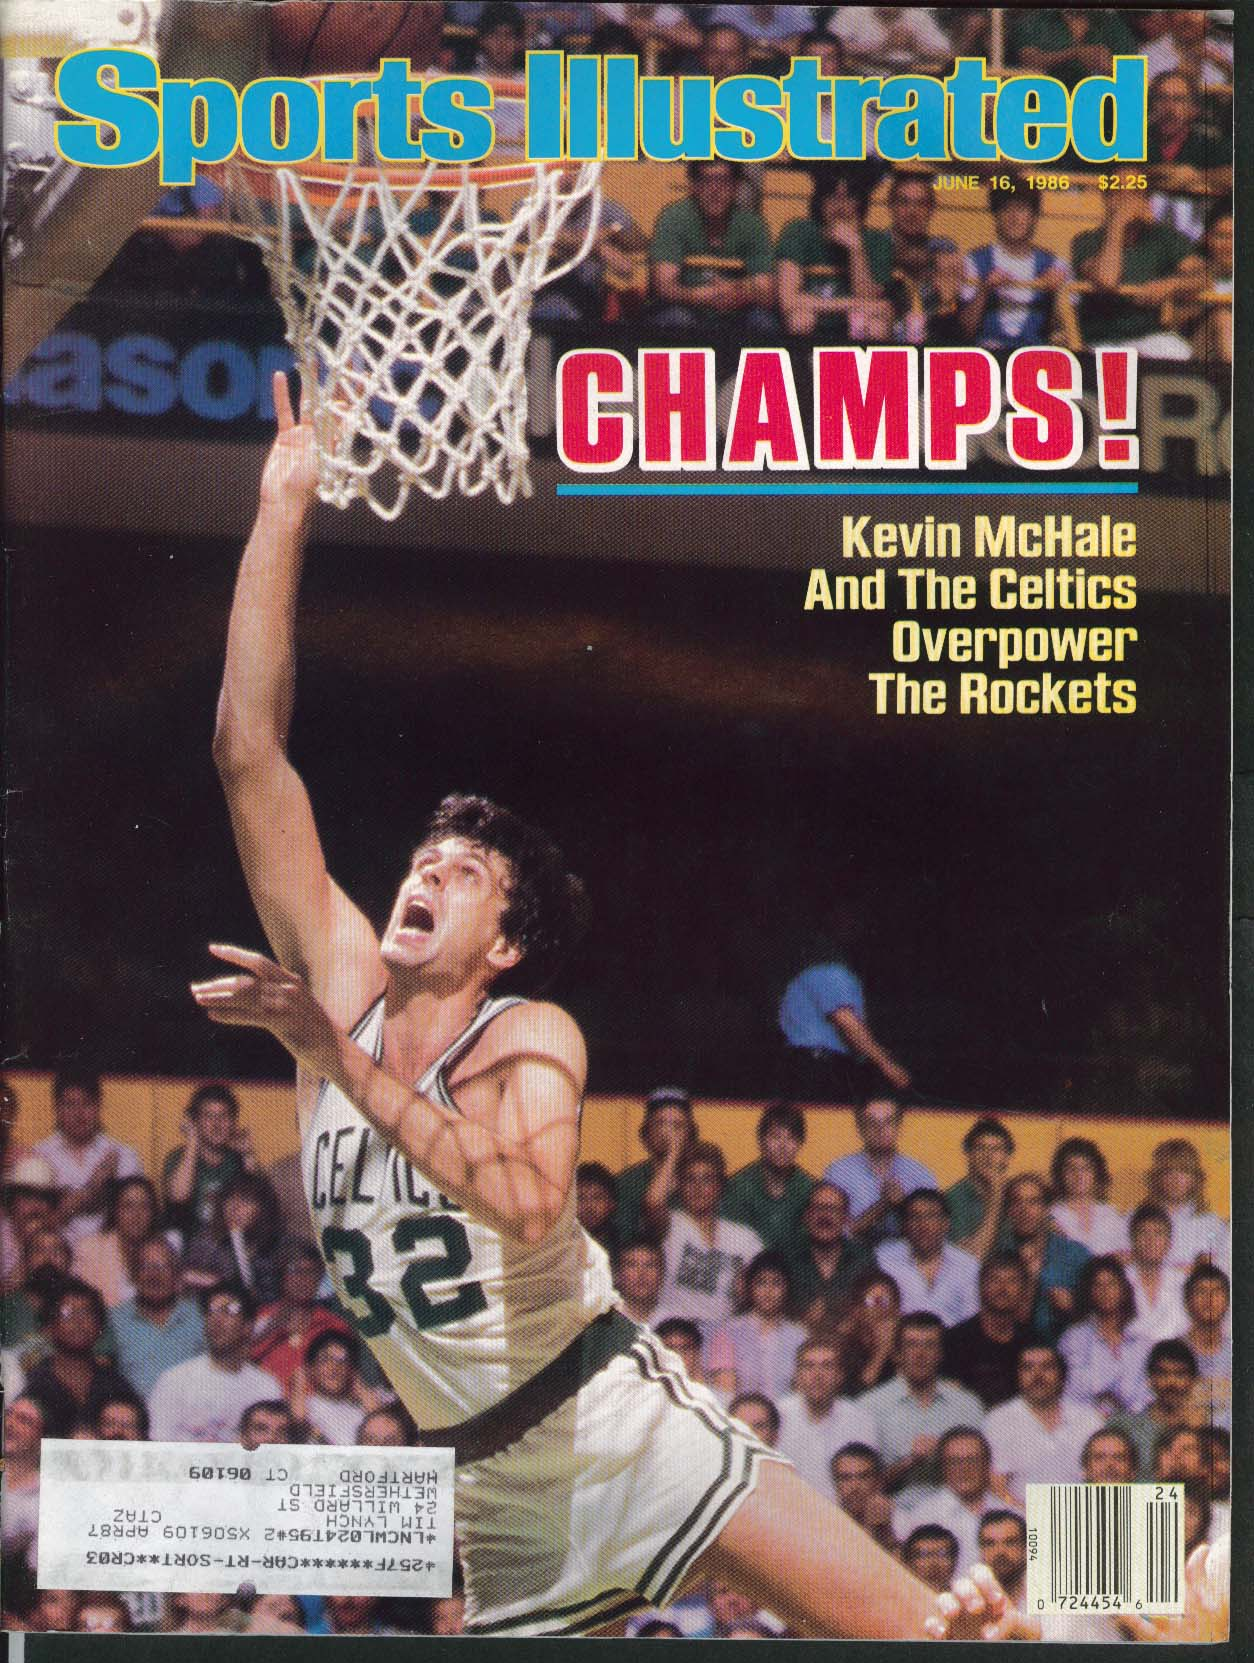 SPORTS ILLUSTRATED Kevin McHale Katy Ormsby Mikael Pernfors Ivan Lendl 6/16 1986